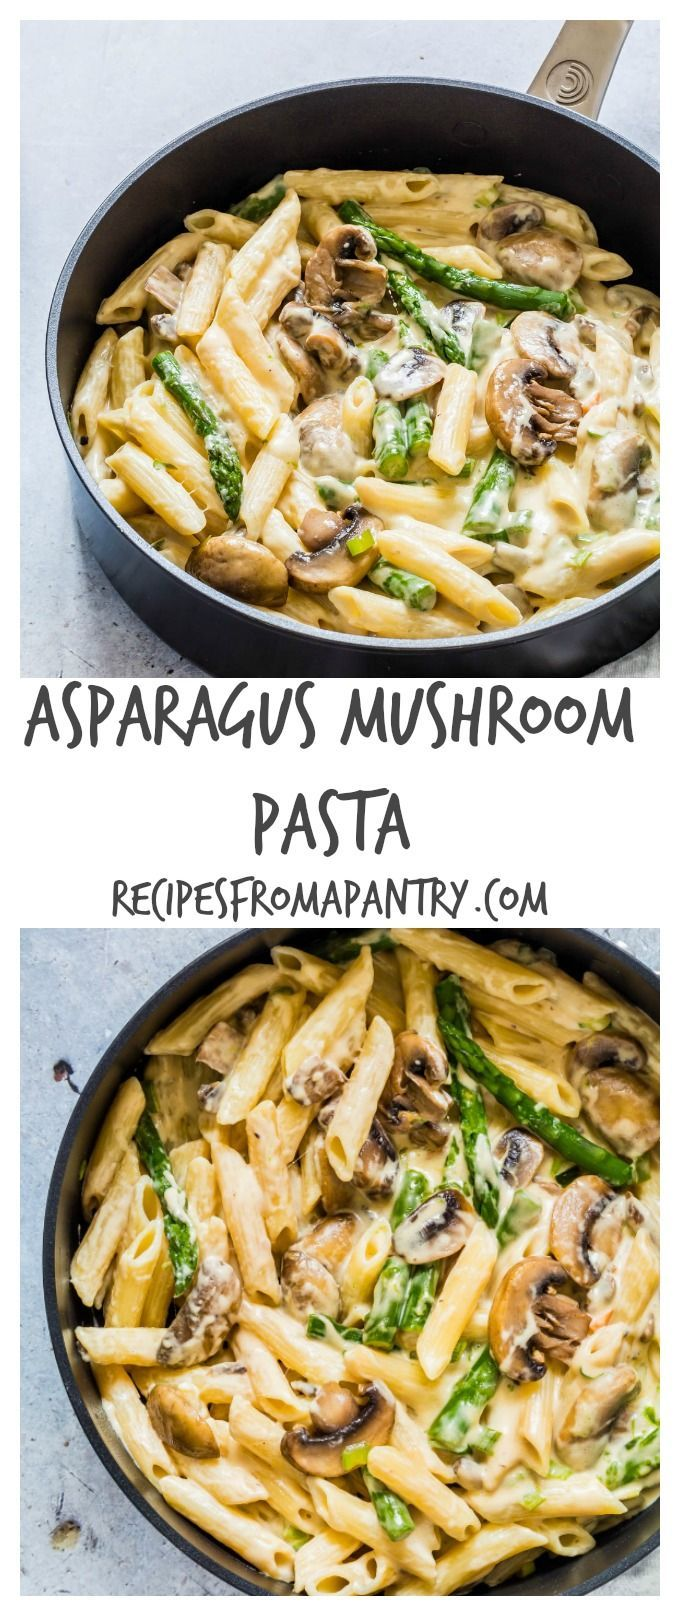 This asparagus mushroom pasta recipe is simple, tasty, comforting and awesome. Recipesfromapantry.com http://hubz.info/cooking